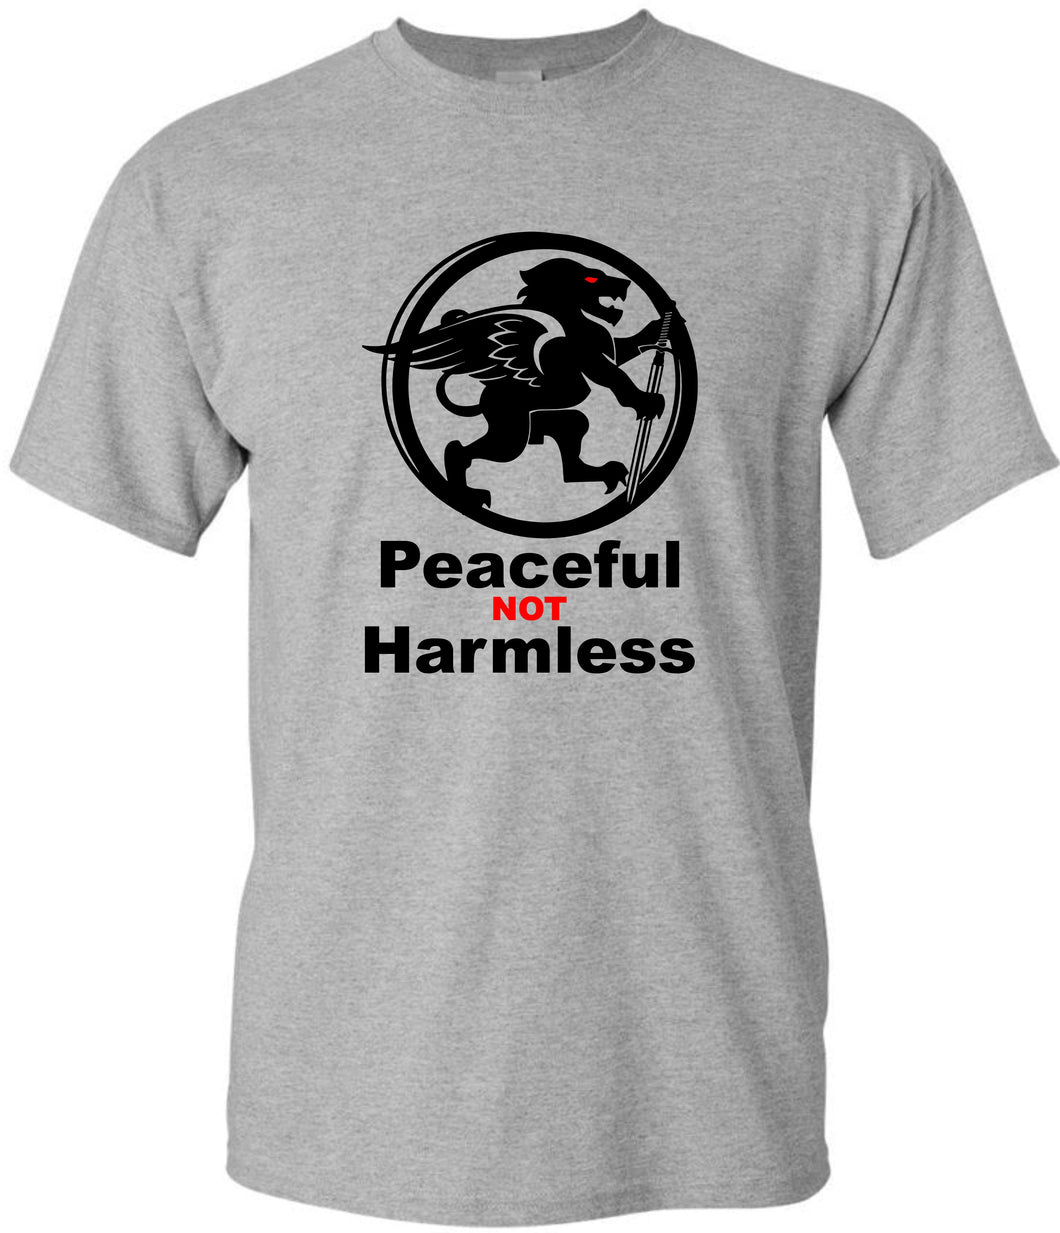 Peaceful NOT Harmless - Short Sleeve T shirt